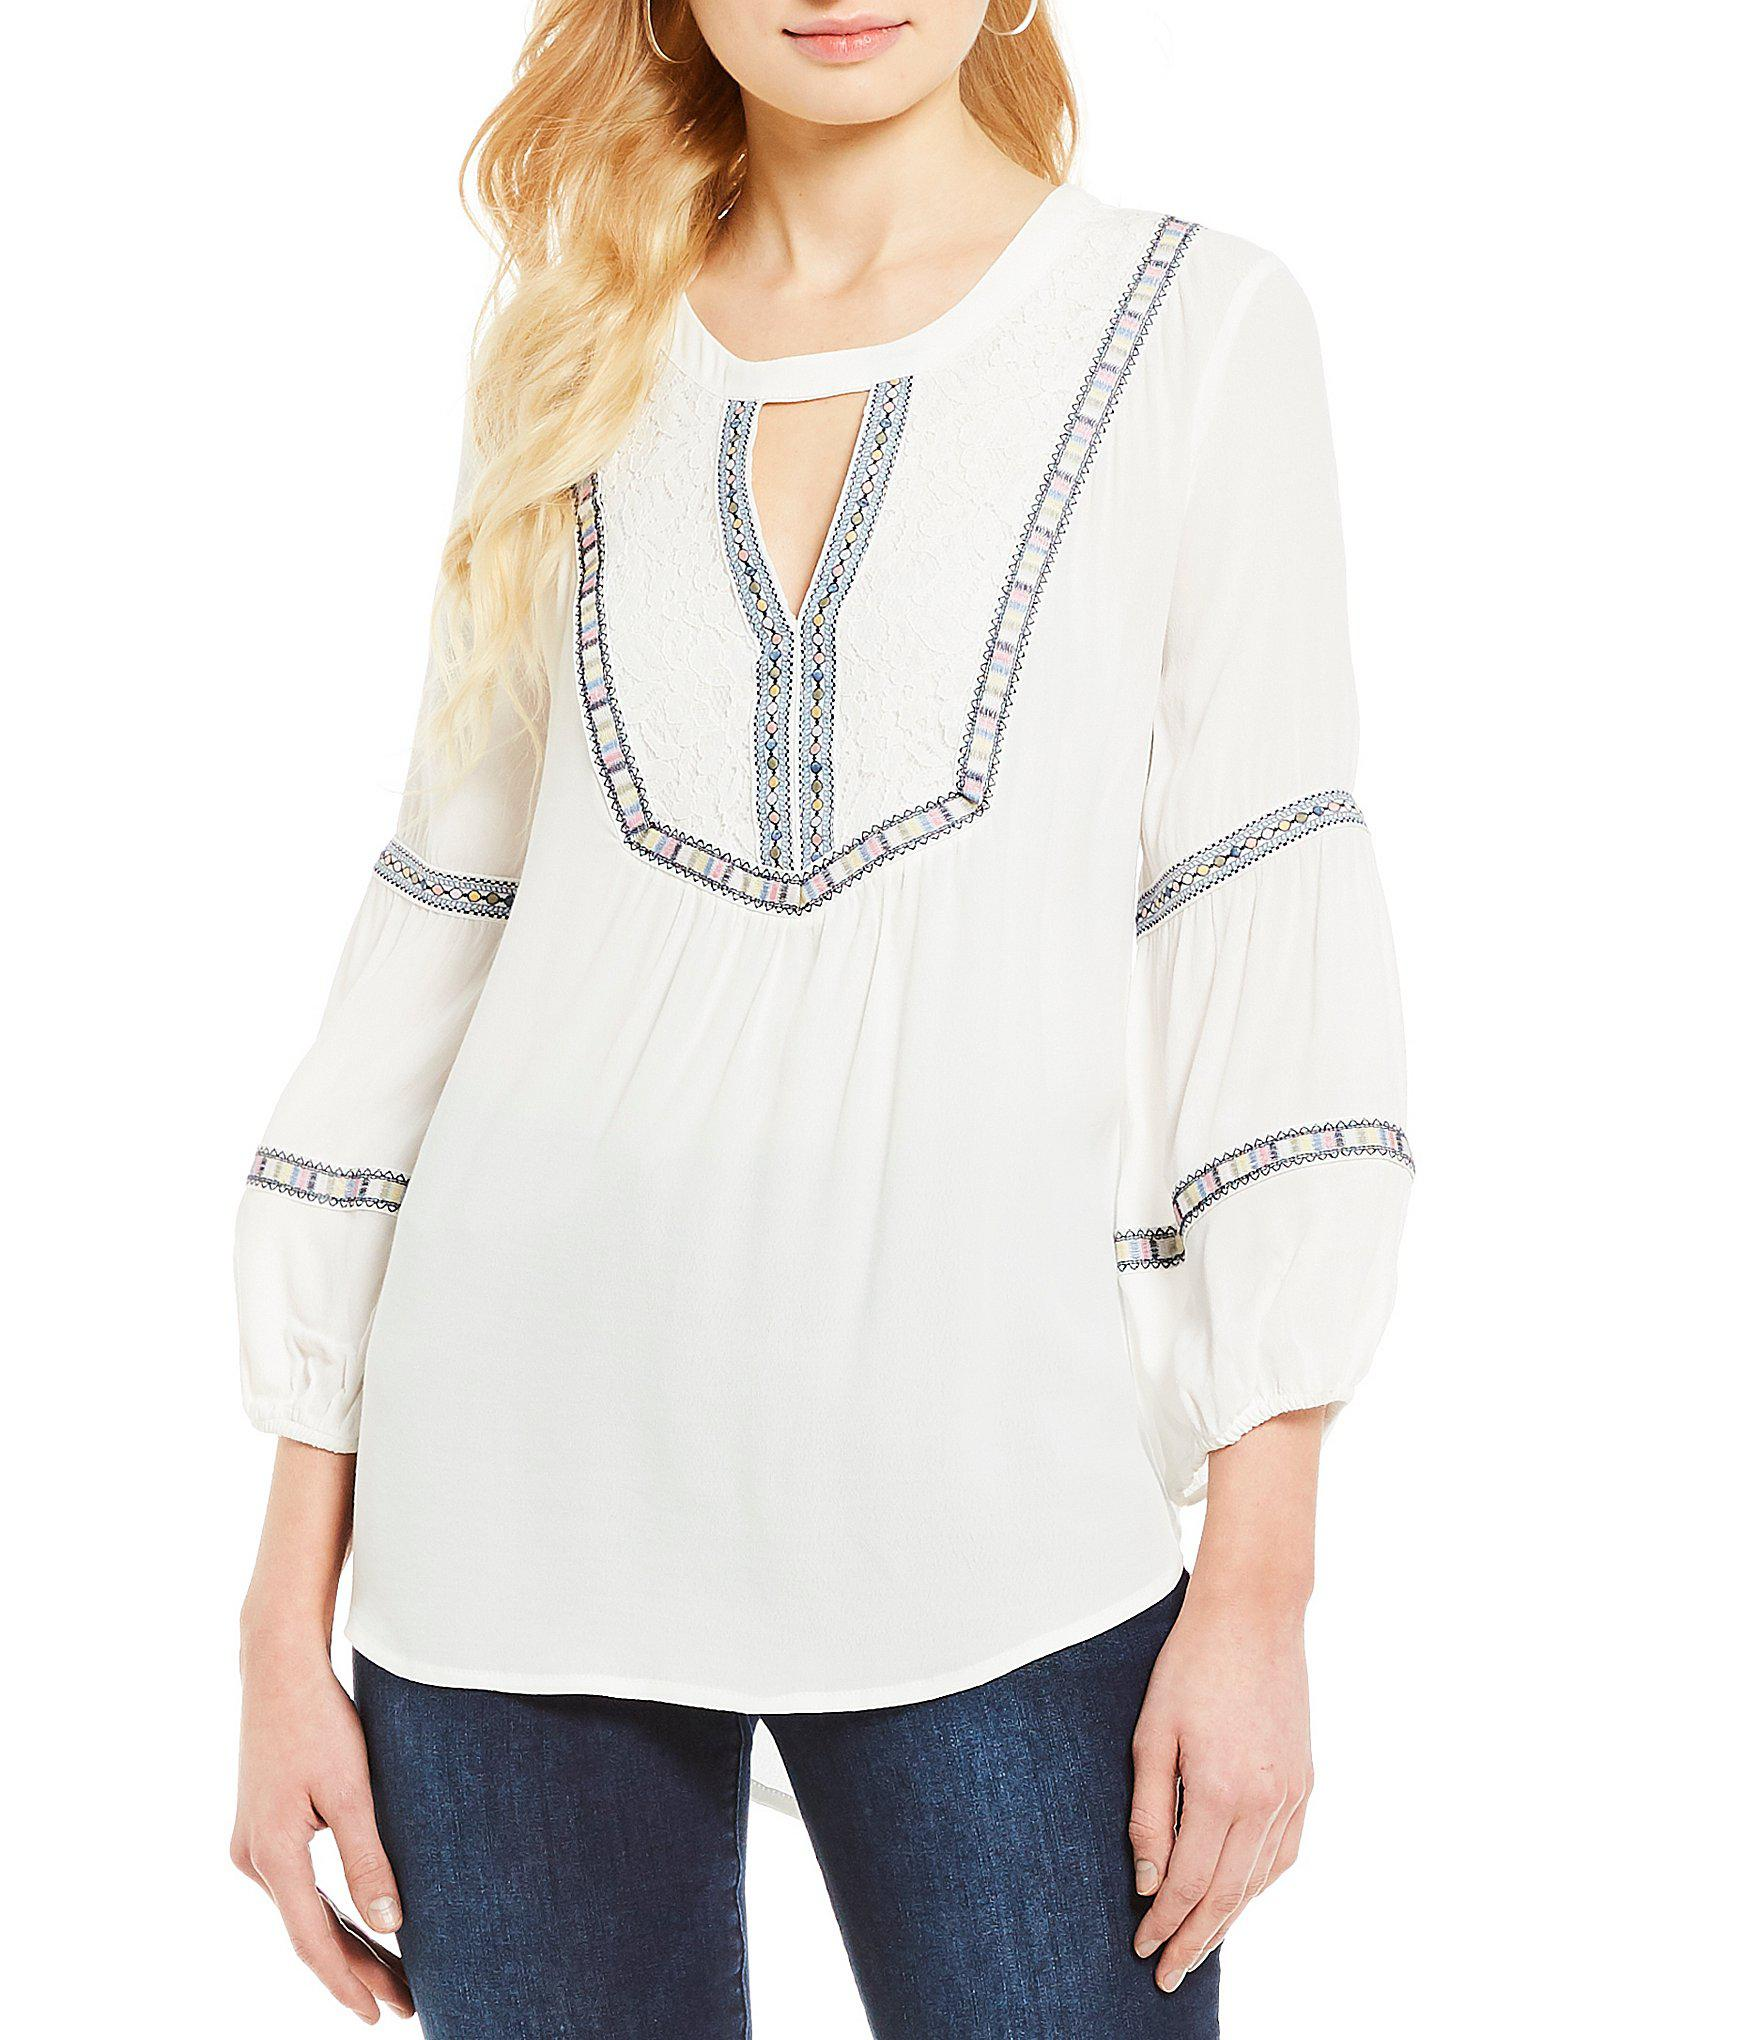 deb88c43c4a Lyst - Democracy Balloon Sleeve Embroidered Keyhole Neck Hi-low Top ...